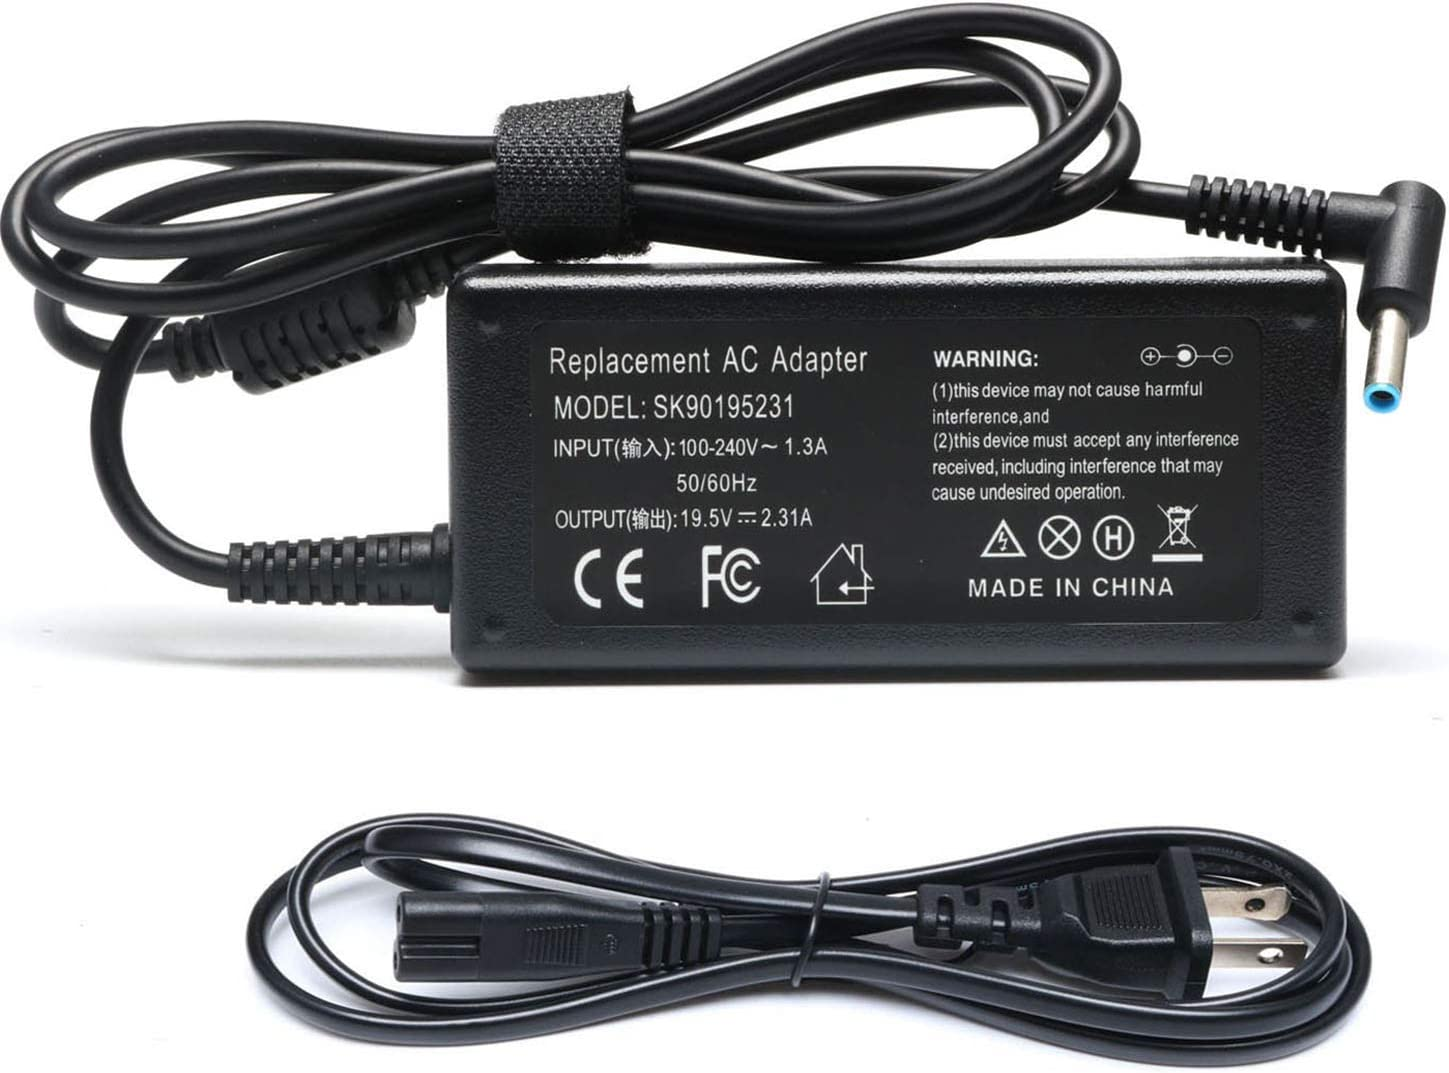 Adapter Charger 45W 19.5V for Hp elitebook Folio 1040 g1;719309-003 741727-001;ADP-45WD B HSTNN-CA40;Pavilion X2 11 13 15;Spectre Ultrabook X2 13-3000;Split 13 X 2;Stream 11 13 14;touchsmart 11 13 15